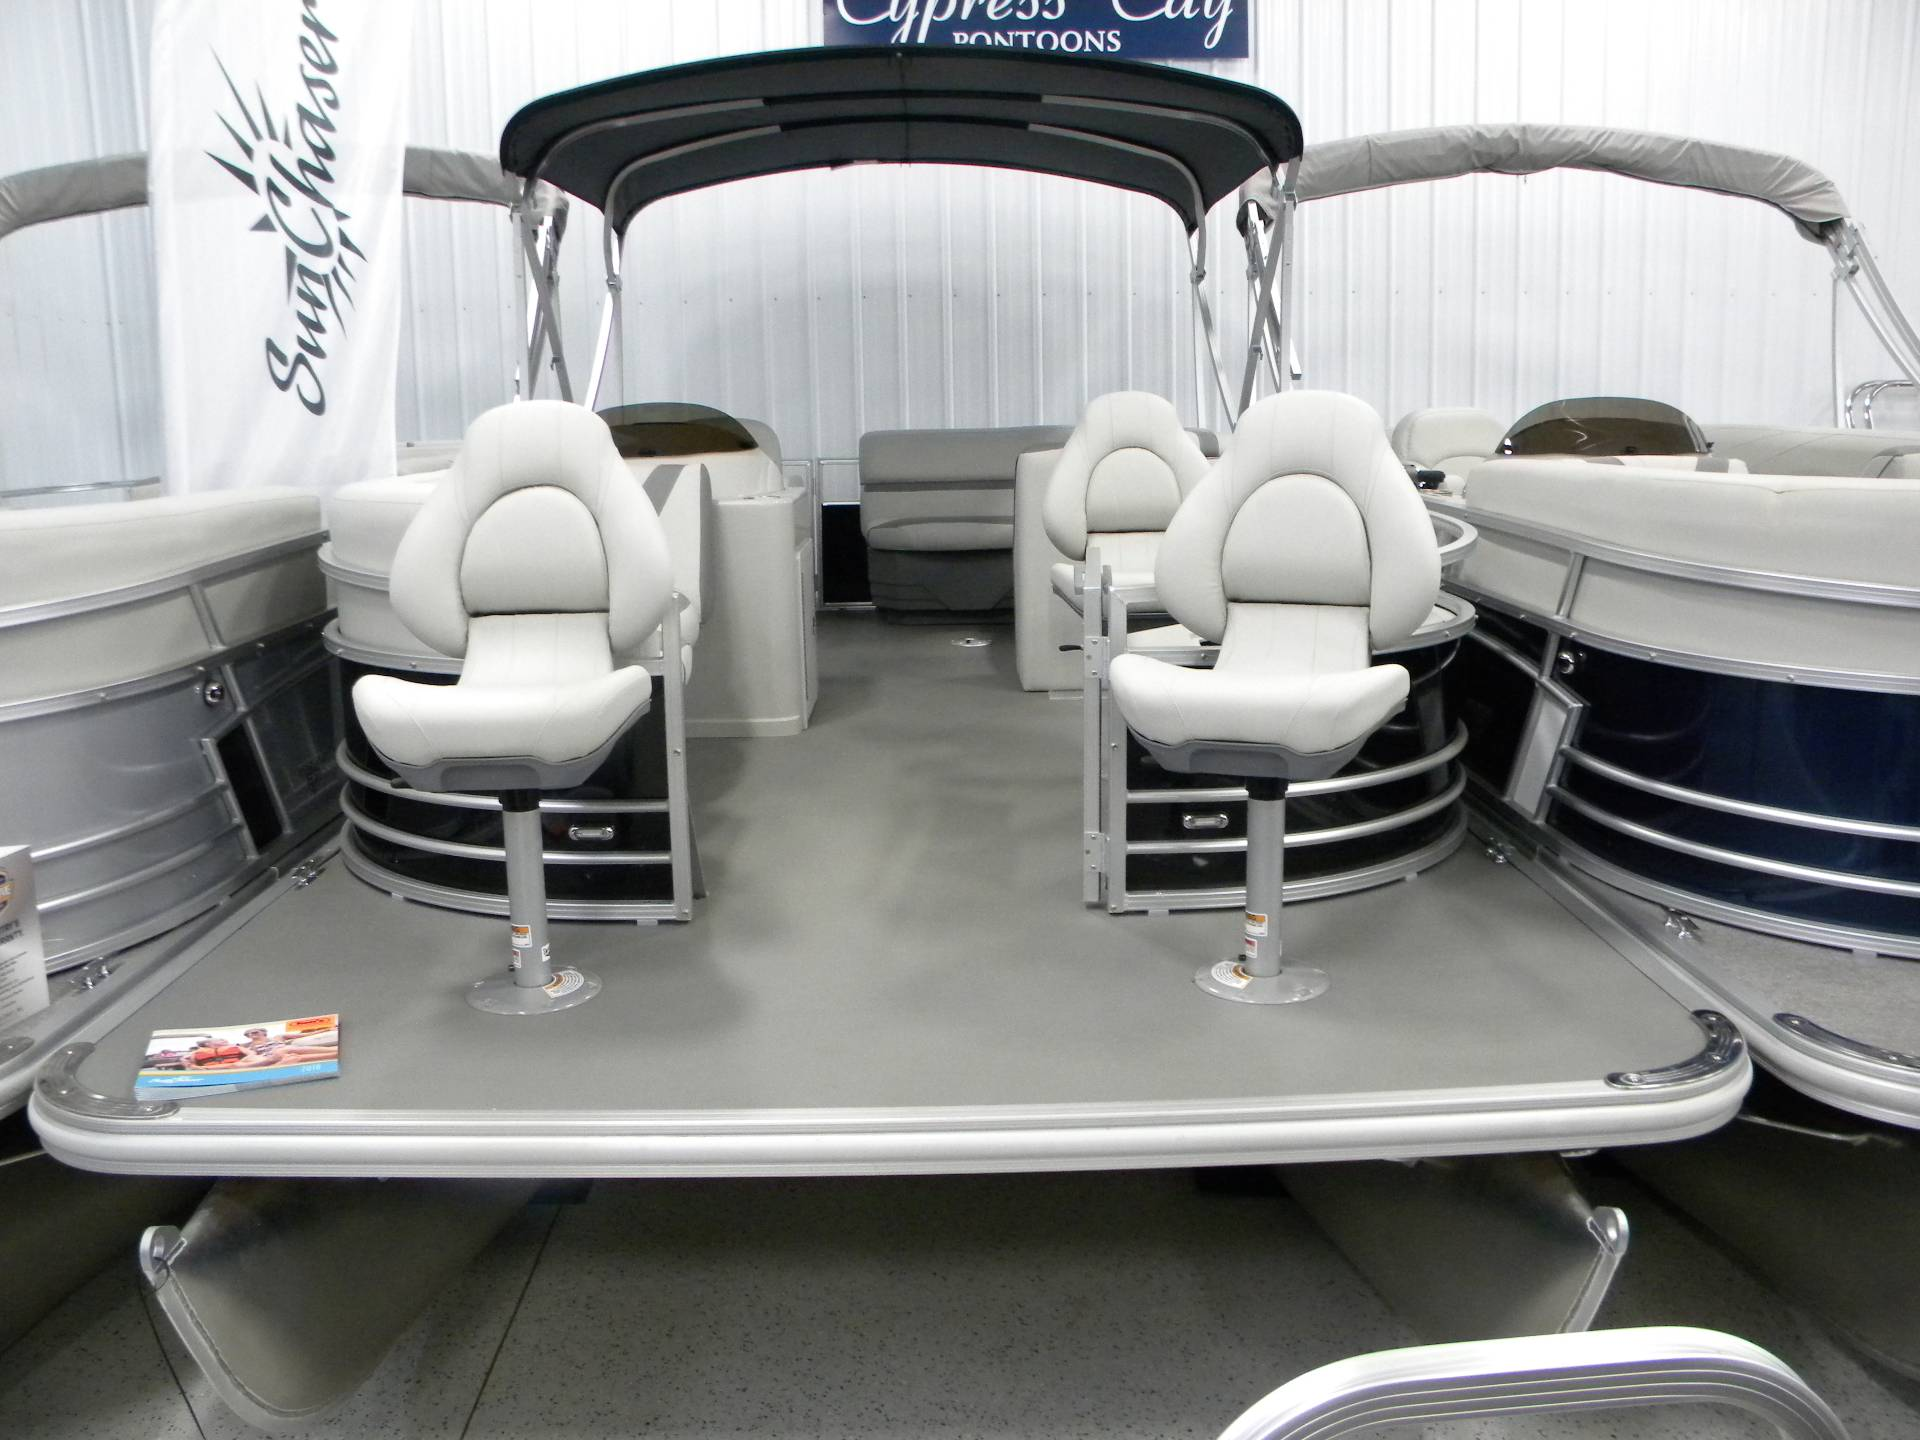 New 2018 Sunchaser Geneva Cruise Ds 20 Crs Power Boats Outboard In